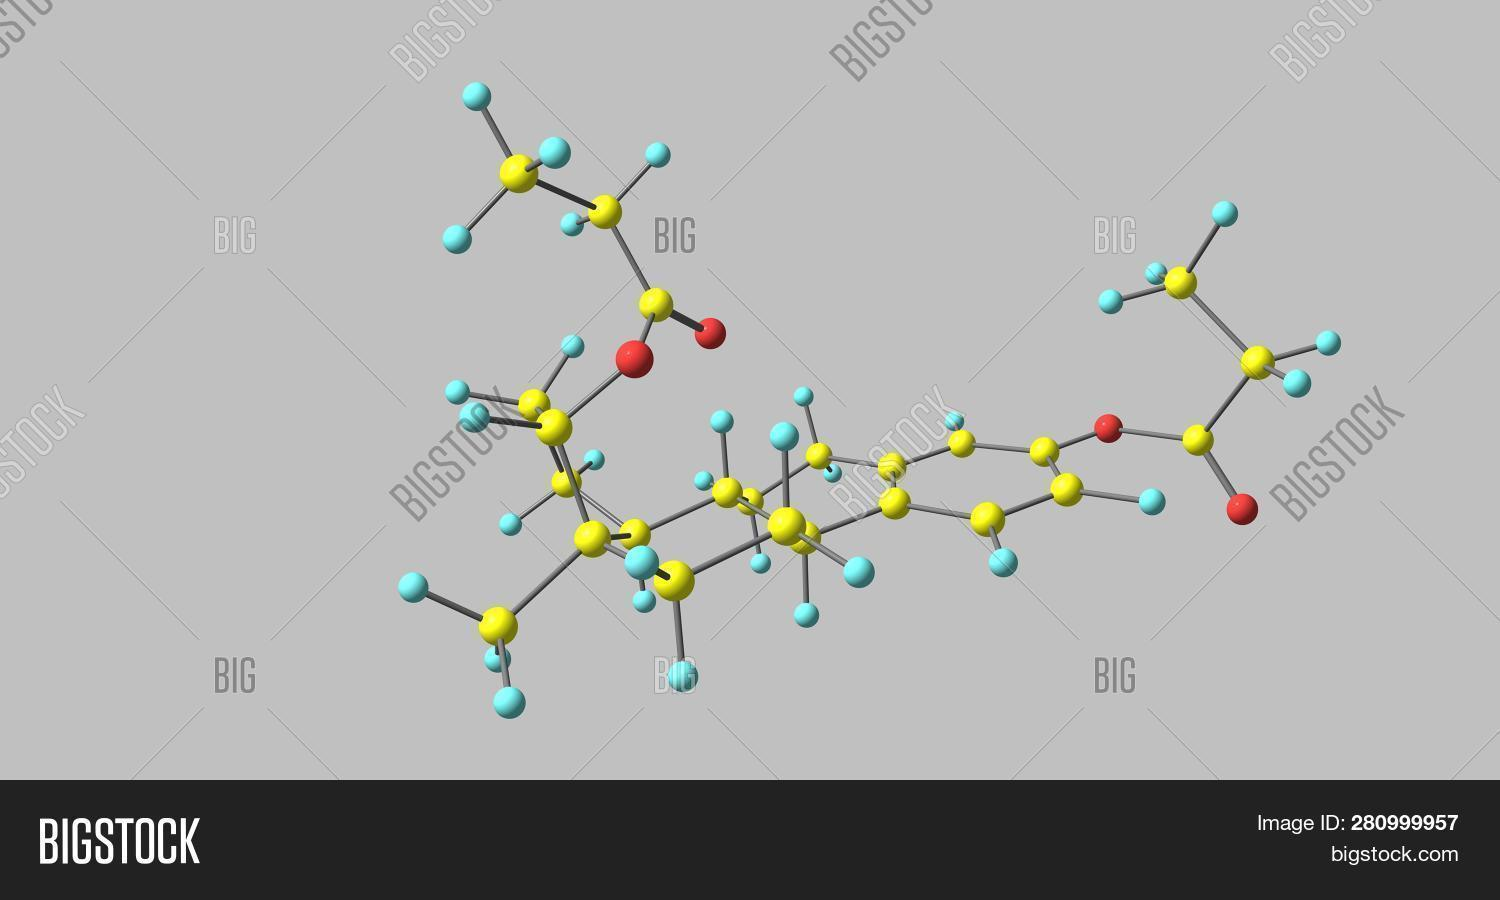 Estradiol dipropionate is an estrogen medication which has been used in the United States. It is given by injection into muscle. 3d illustration